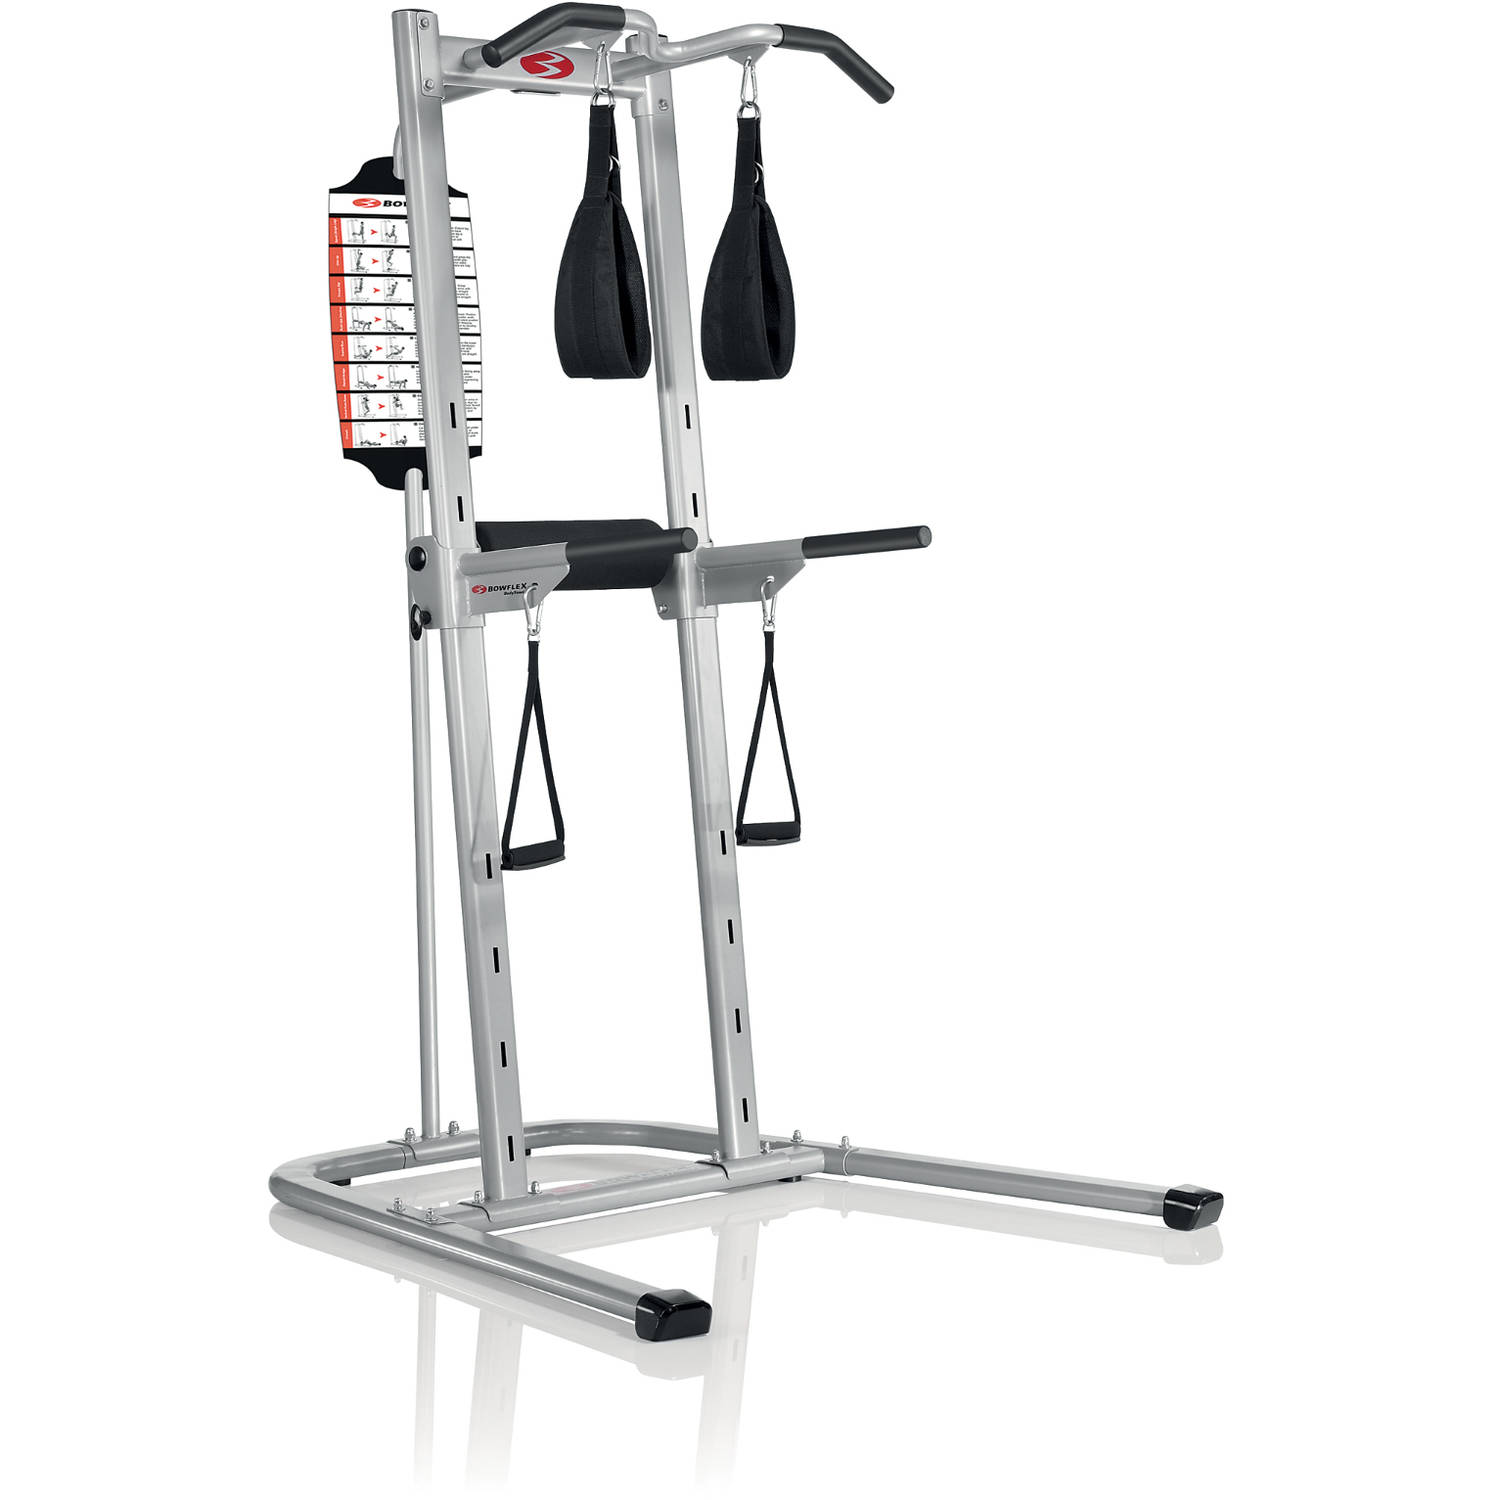 Bowflex BodyTower with Commercial-Grade Steel and EZ-Adjust Bars